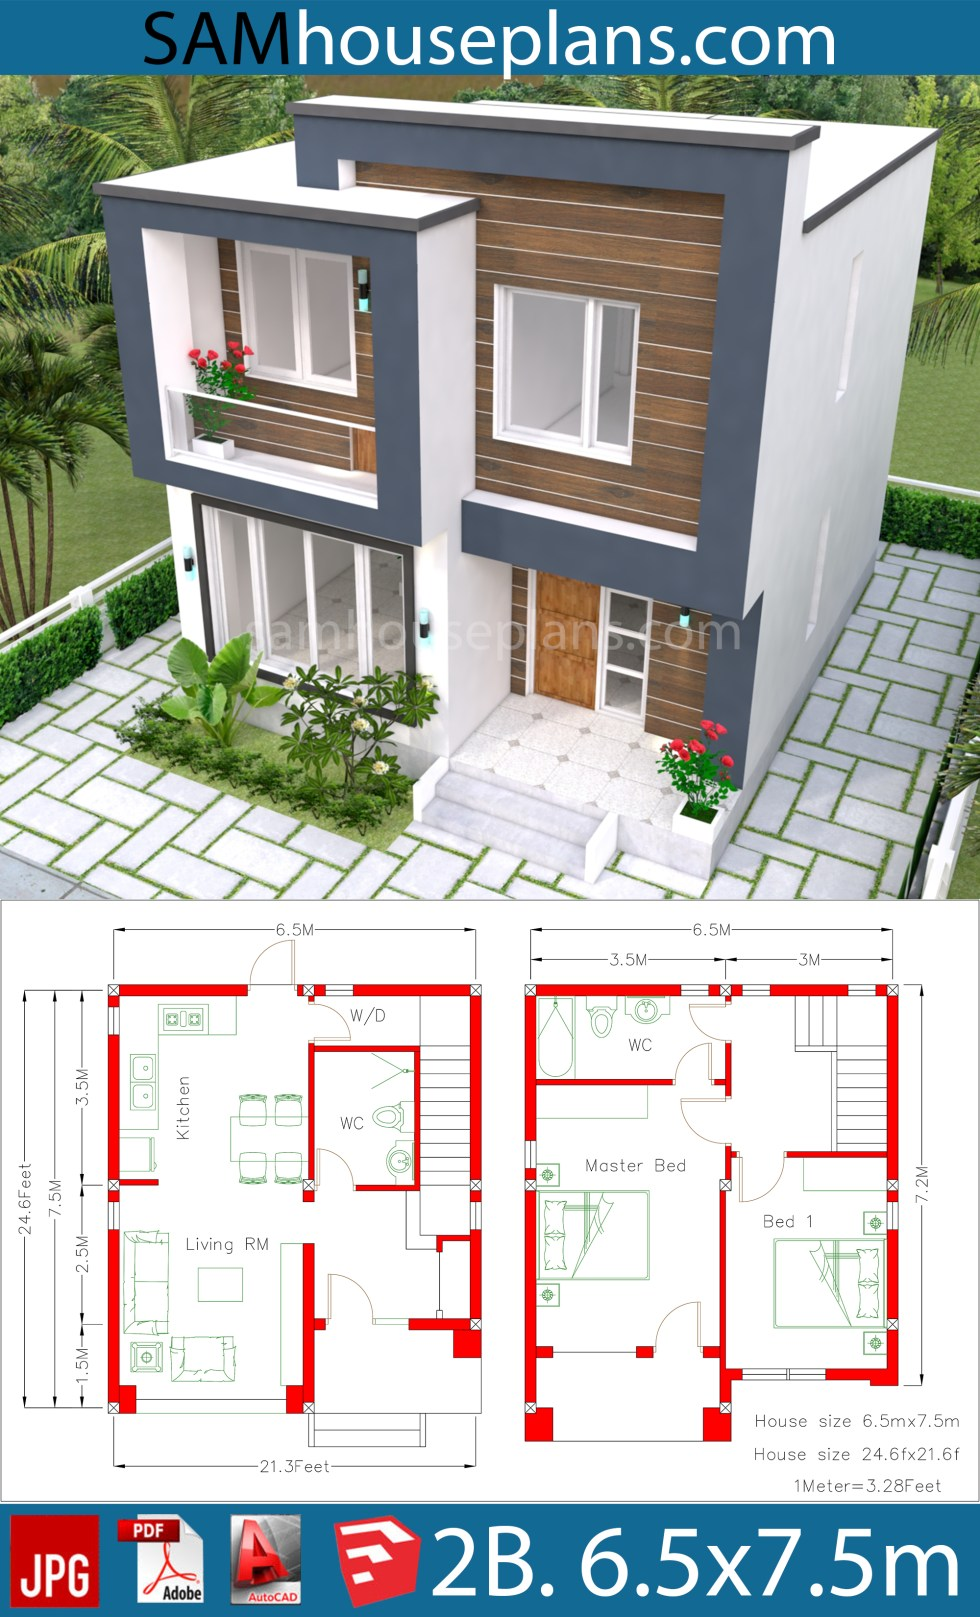 House Plans 6.5x7.5M with 2 Bedrooms - SamHousePlans